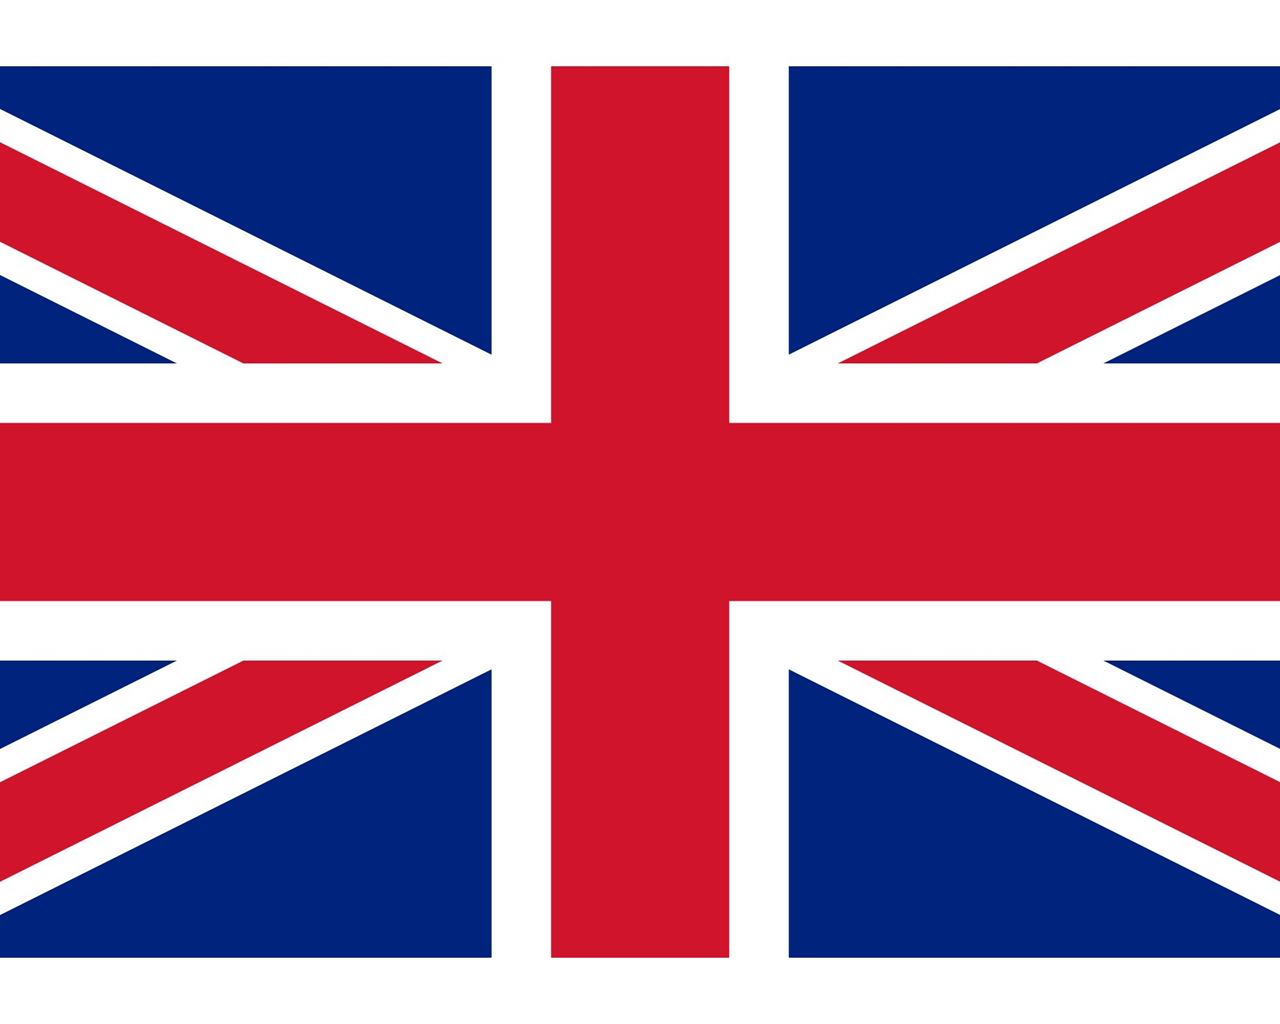 Hd Background Wallpaper 800x600: Hd Great Britain Flag Wallpapers Desktop Background